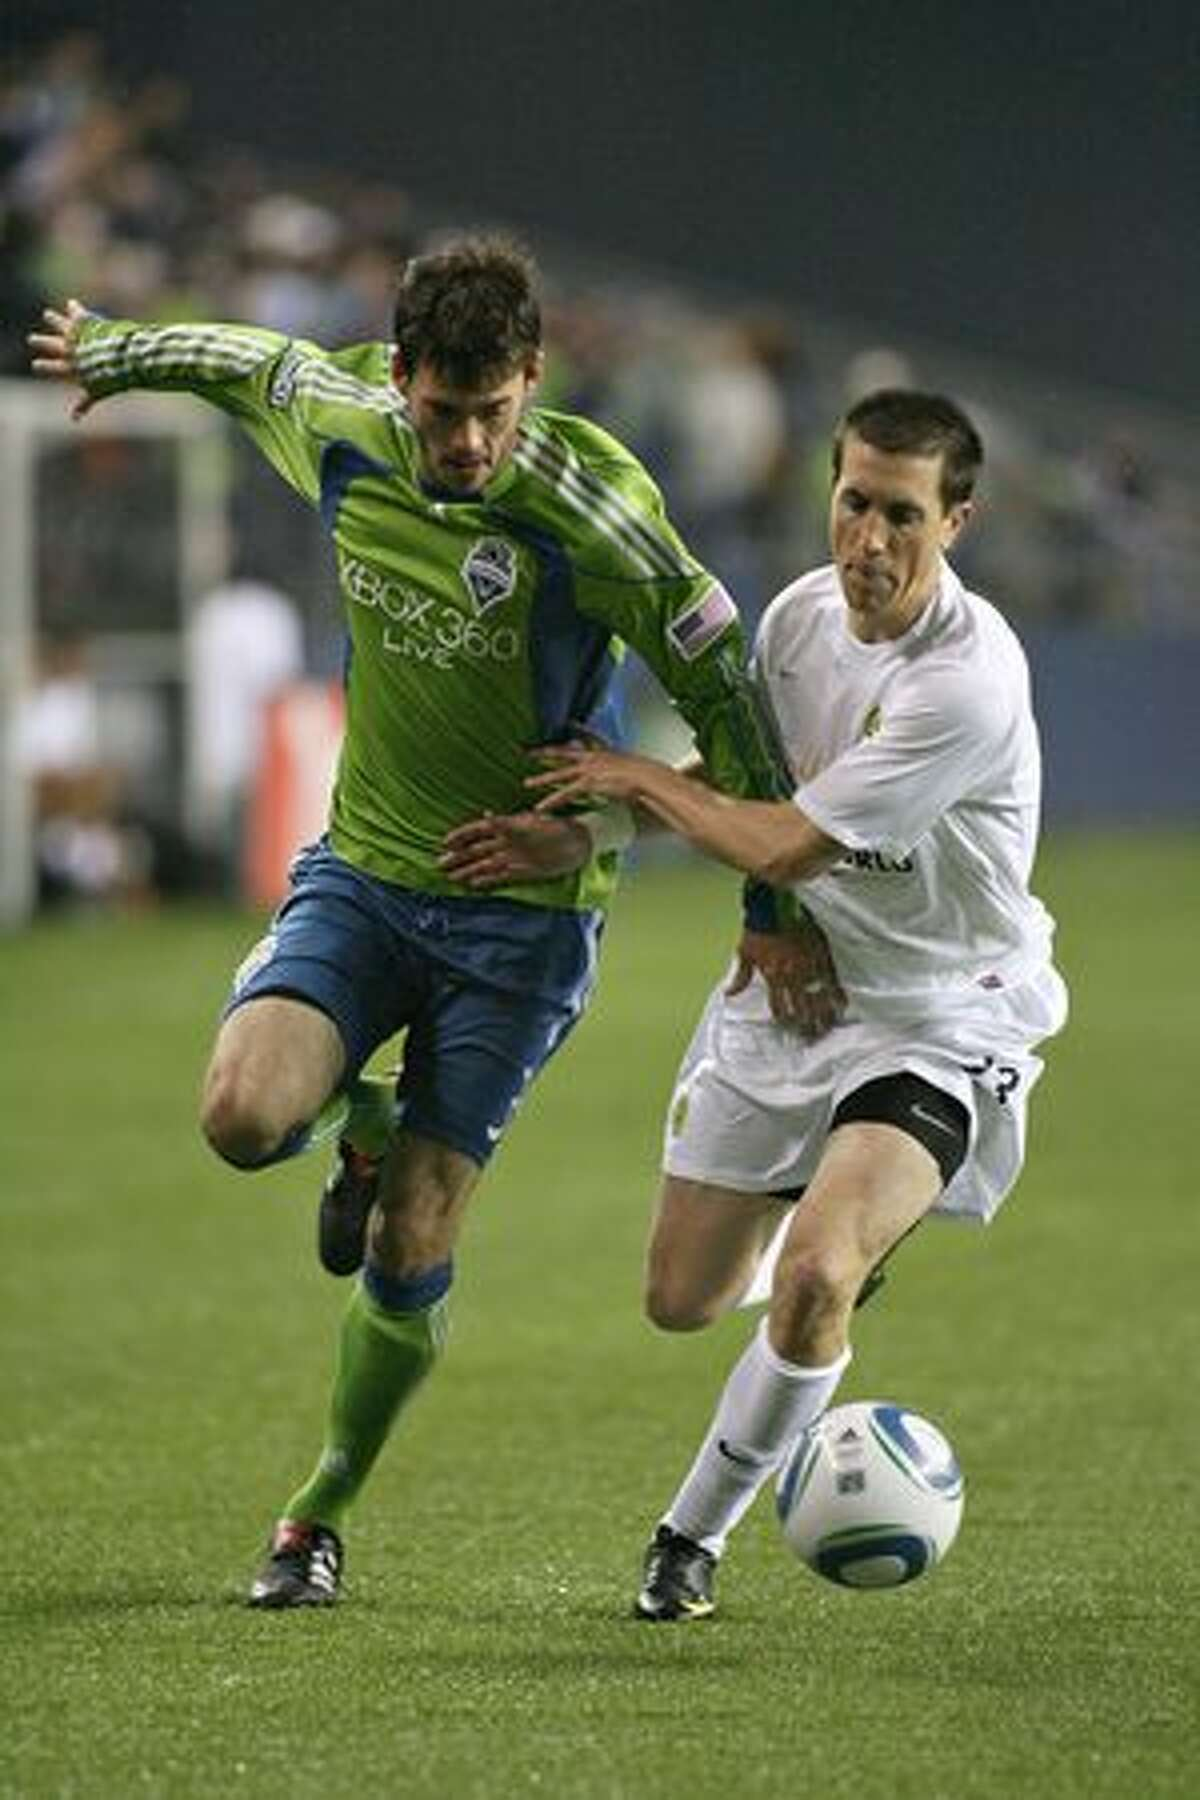 Brad Evans of the Seattle Sounders and Ryan Pore of the Portland Timbers are seen in second half action of a preseason match on March 11, 2010 at Qwest Field in Seattle.